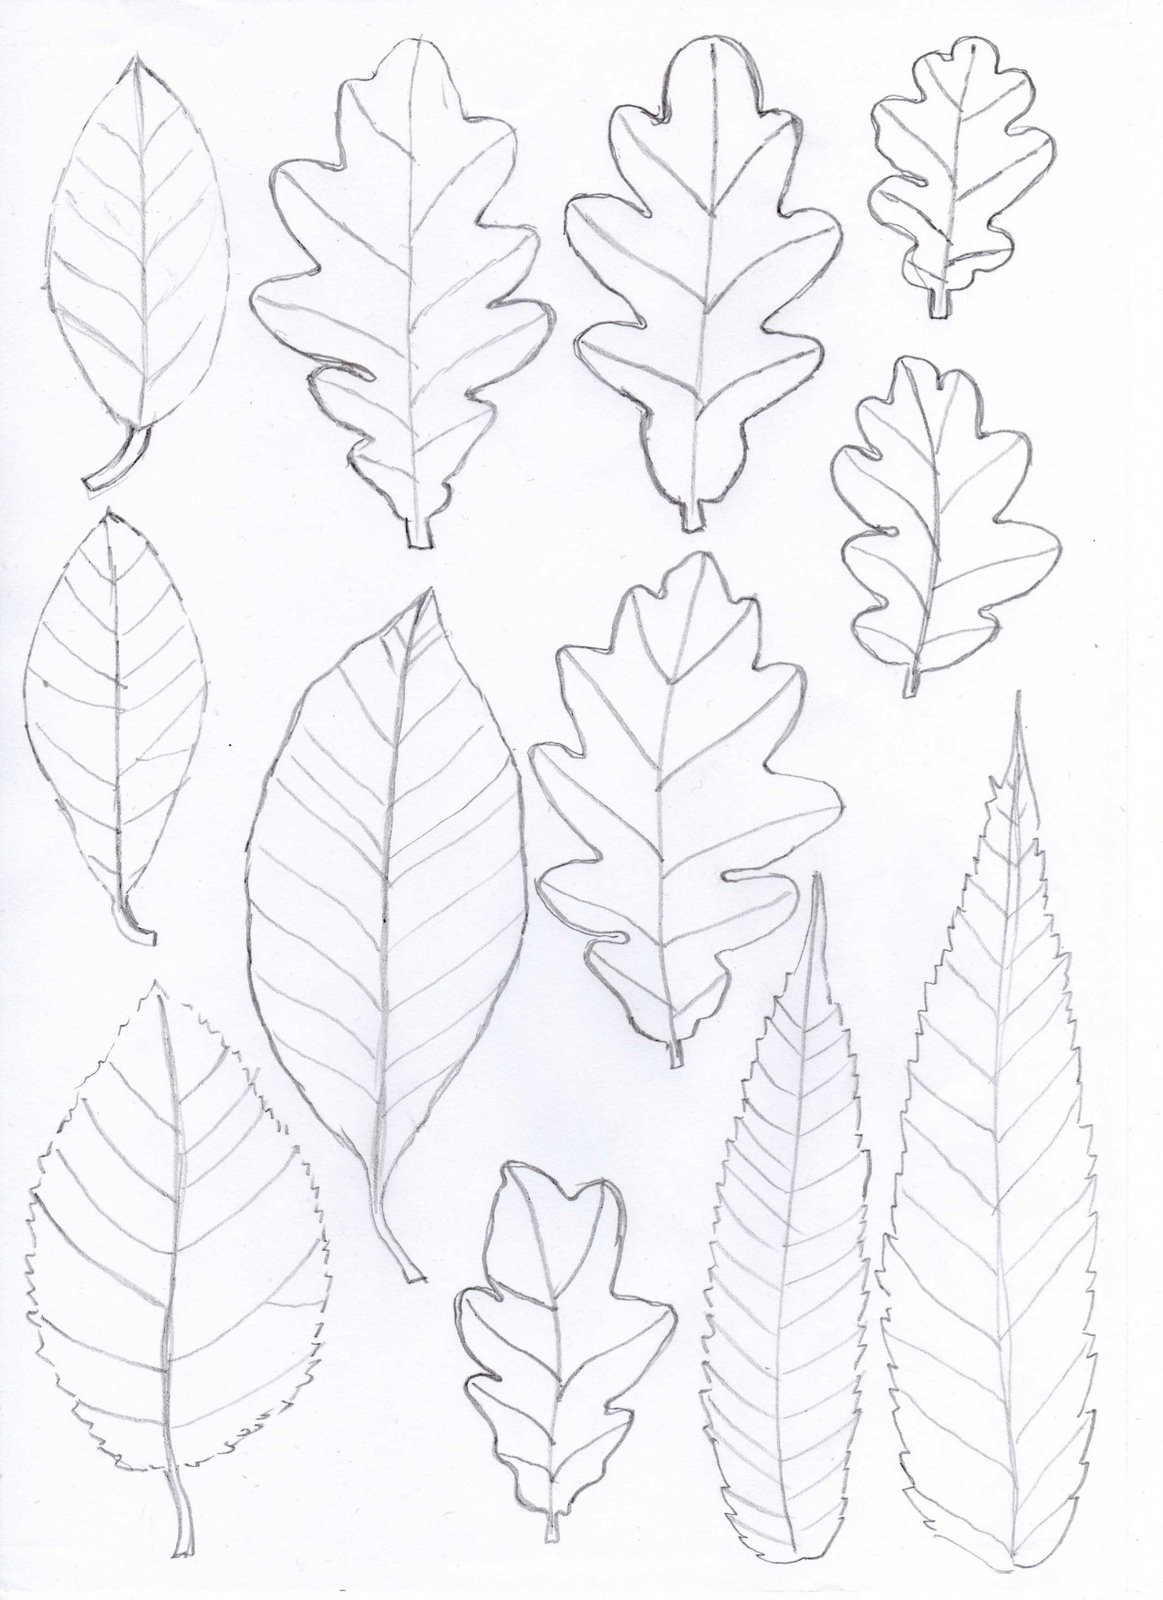 Invaluable image with printable leaf patterns